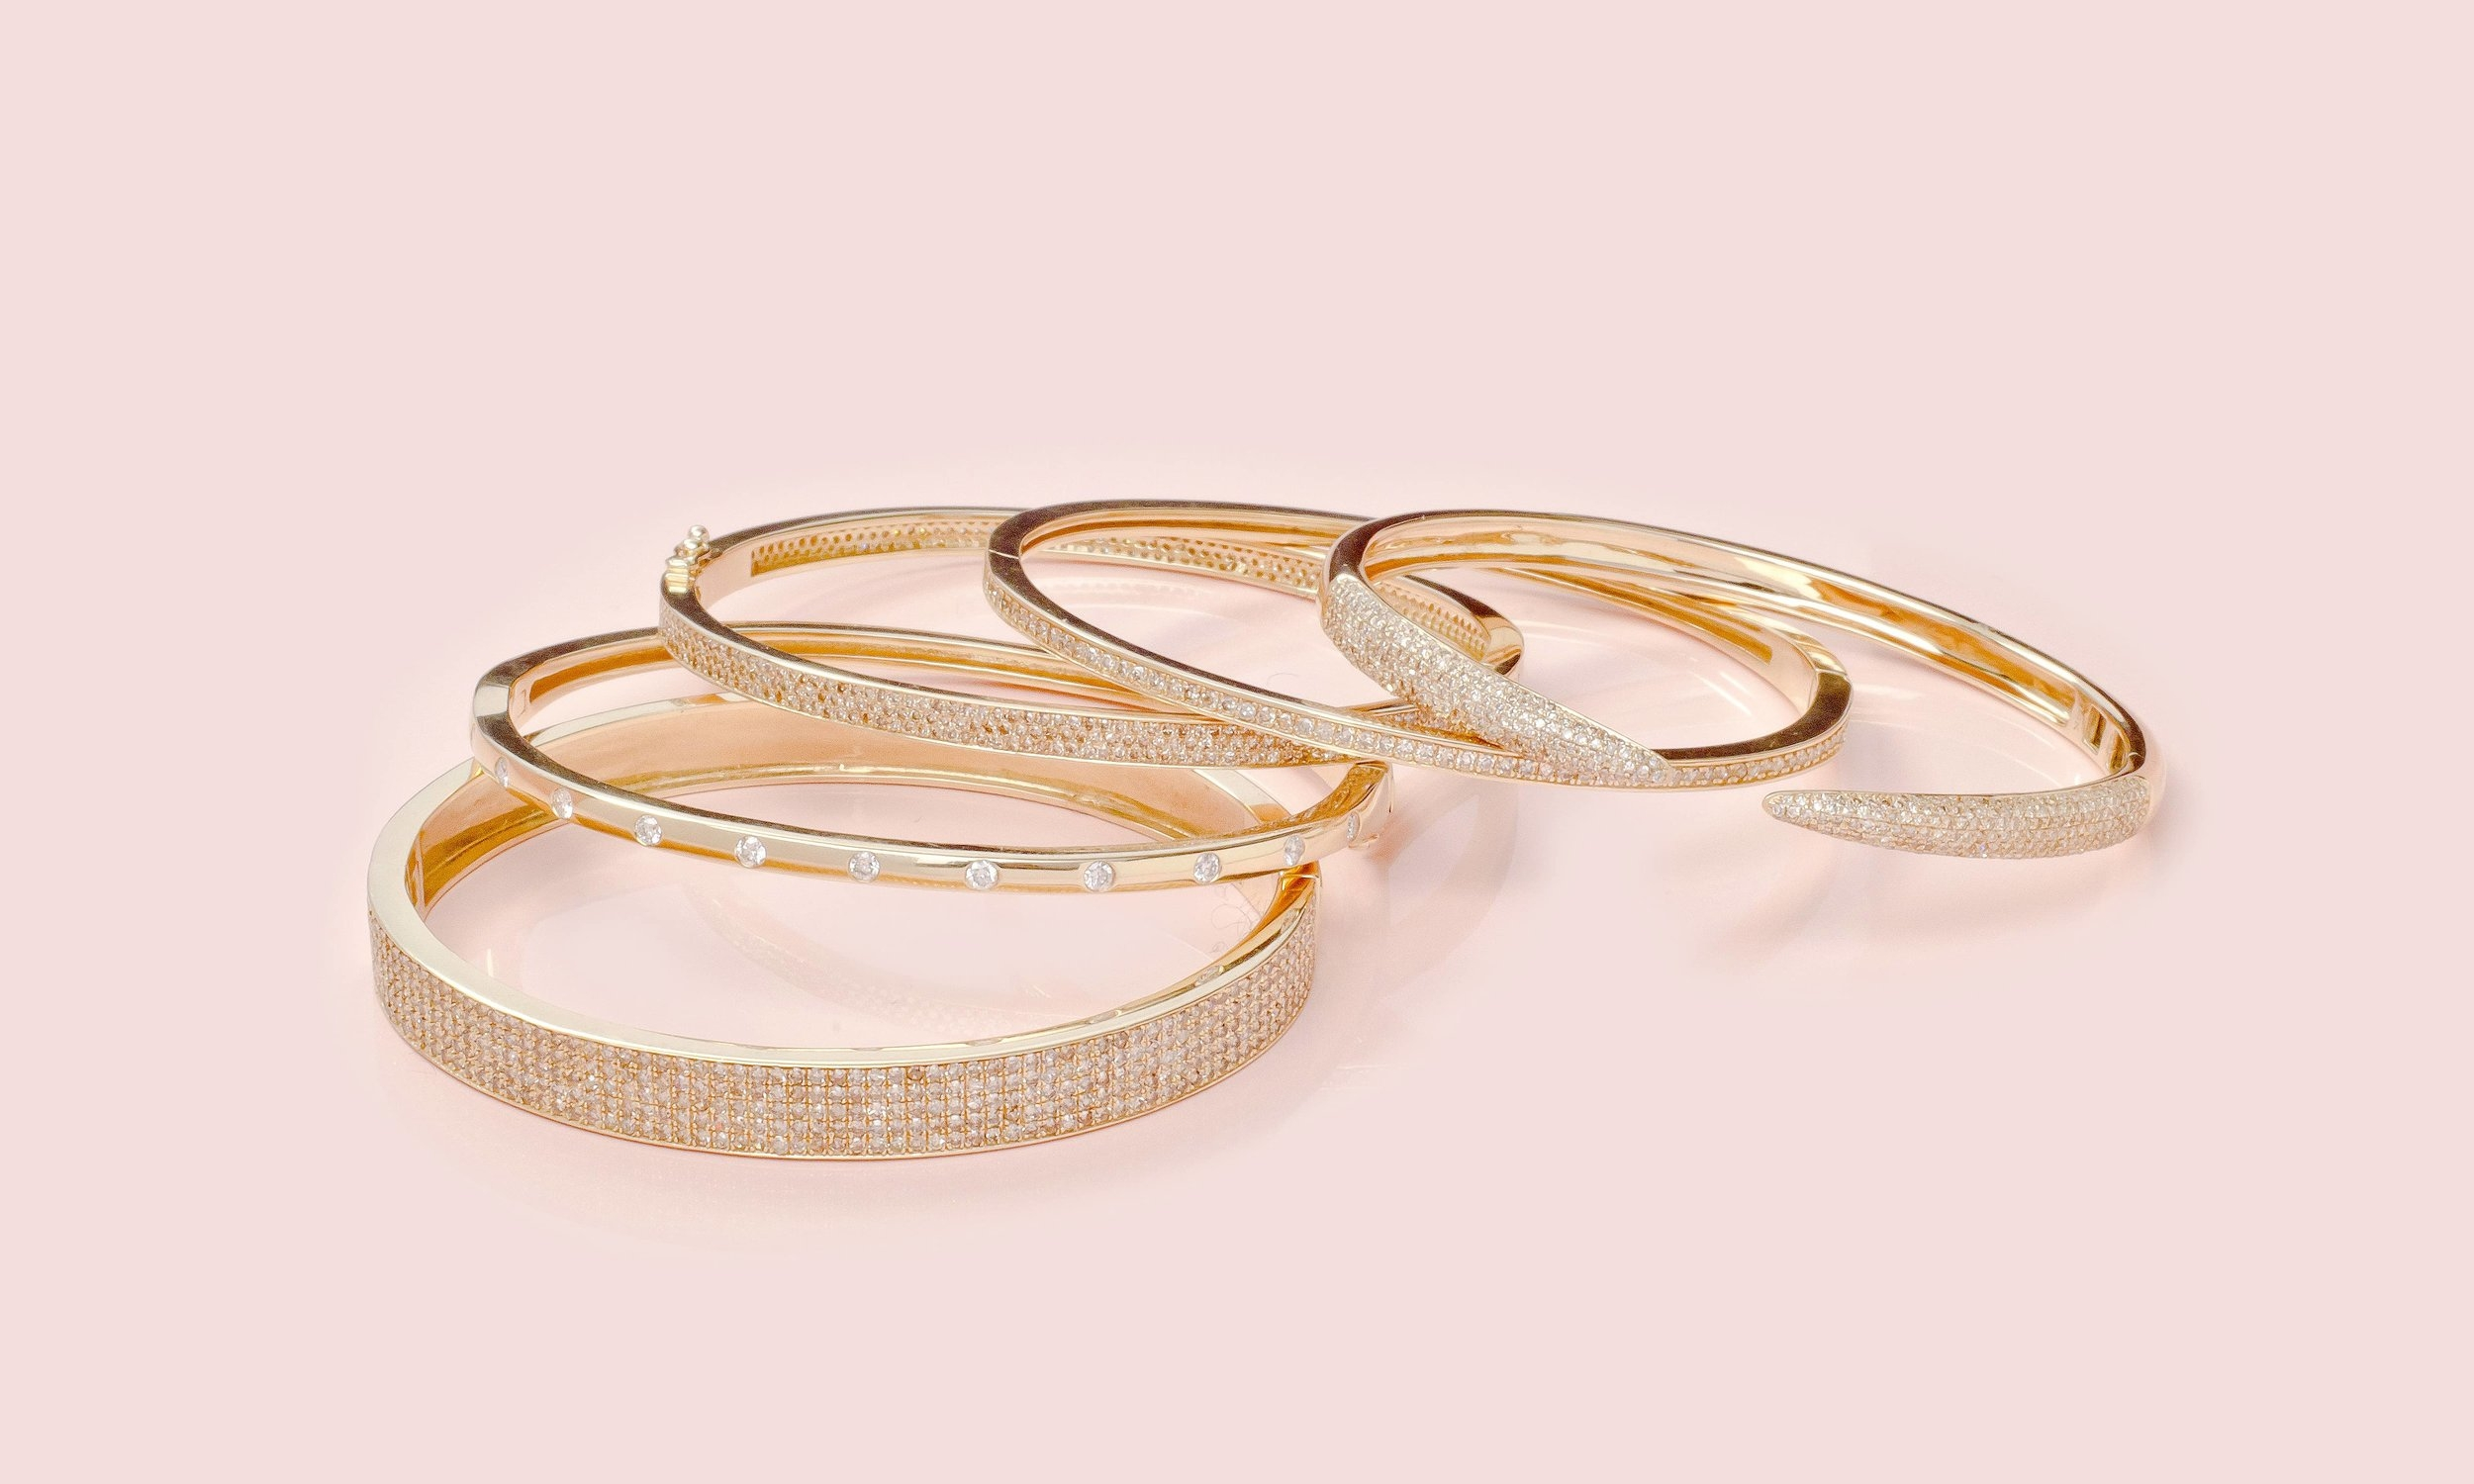 DIAMOND is a girl's best friend - Shop our DIAMOND line, with most styles available in 14kt gold and oxidized sterling.